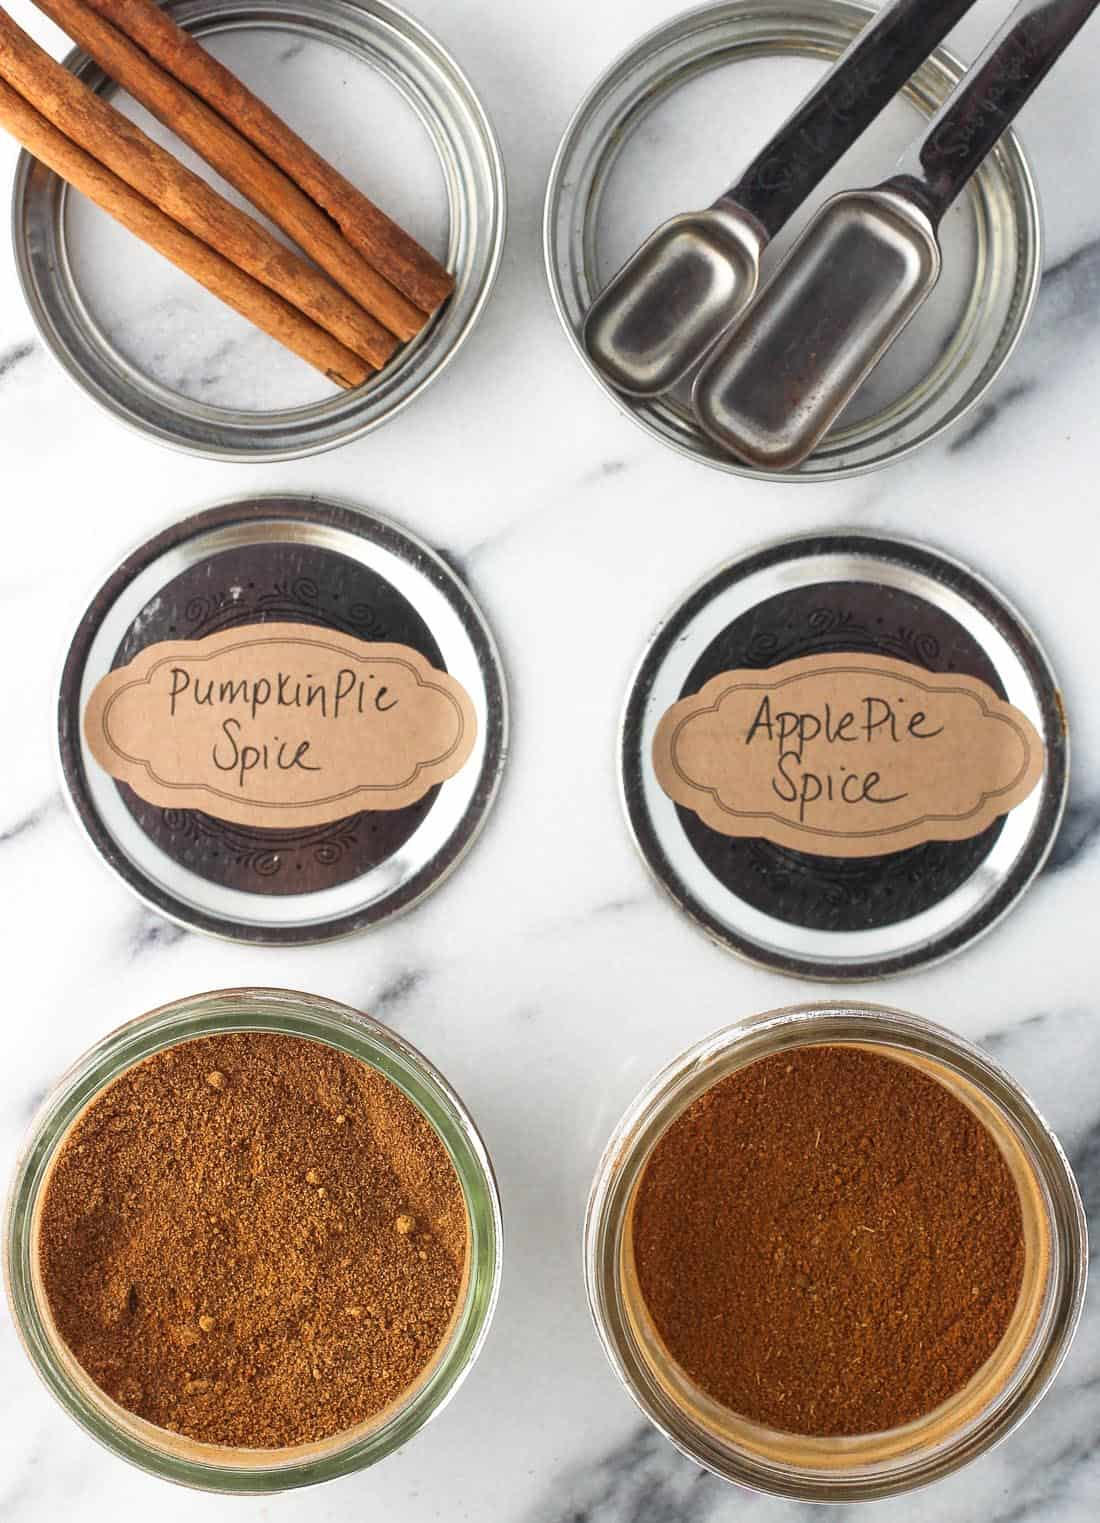 It's so easy to make your own pumpkin pie spice. Perfect for fall baking!